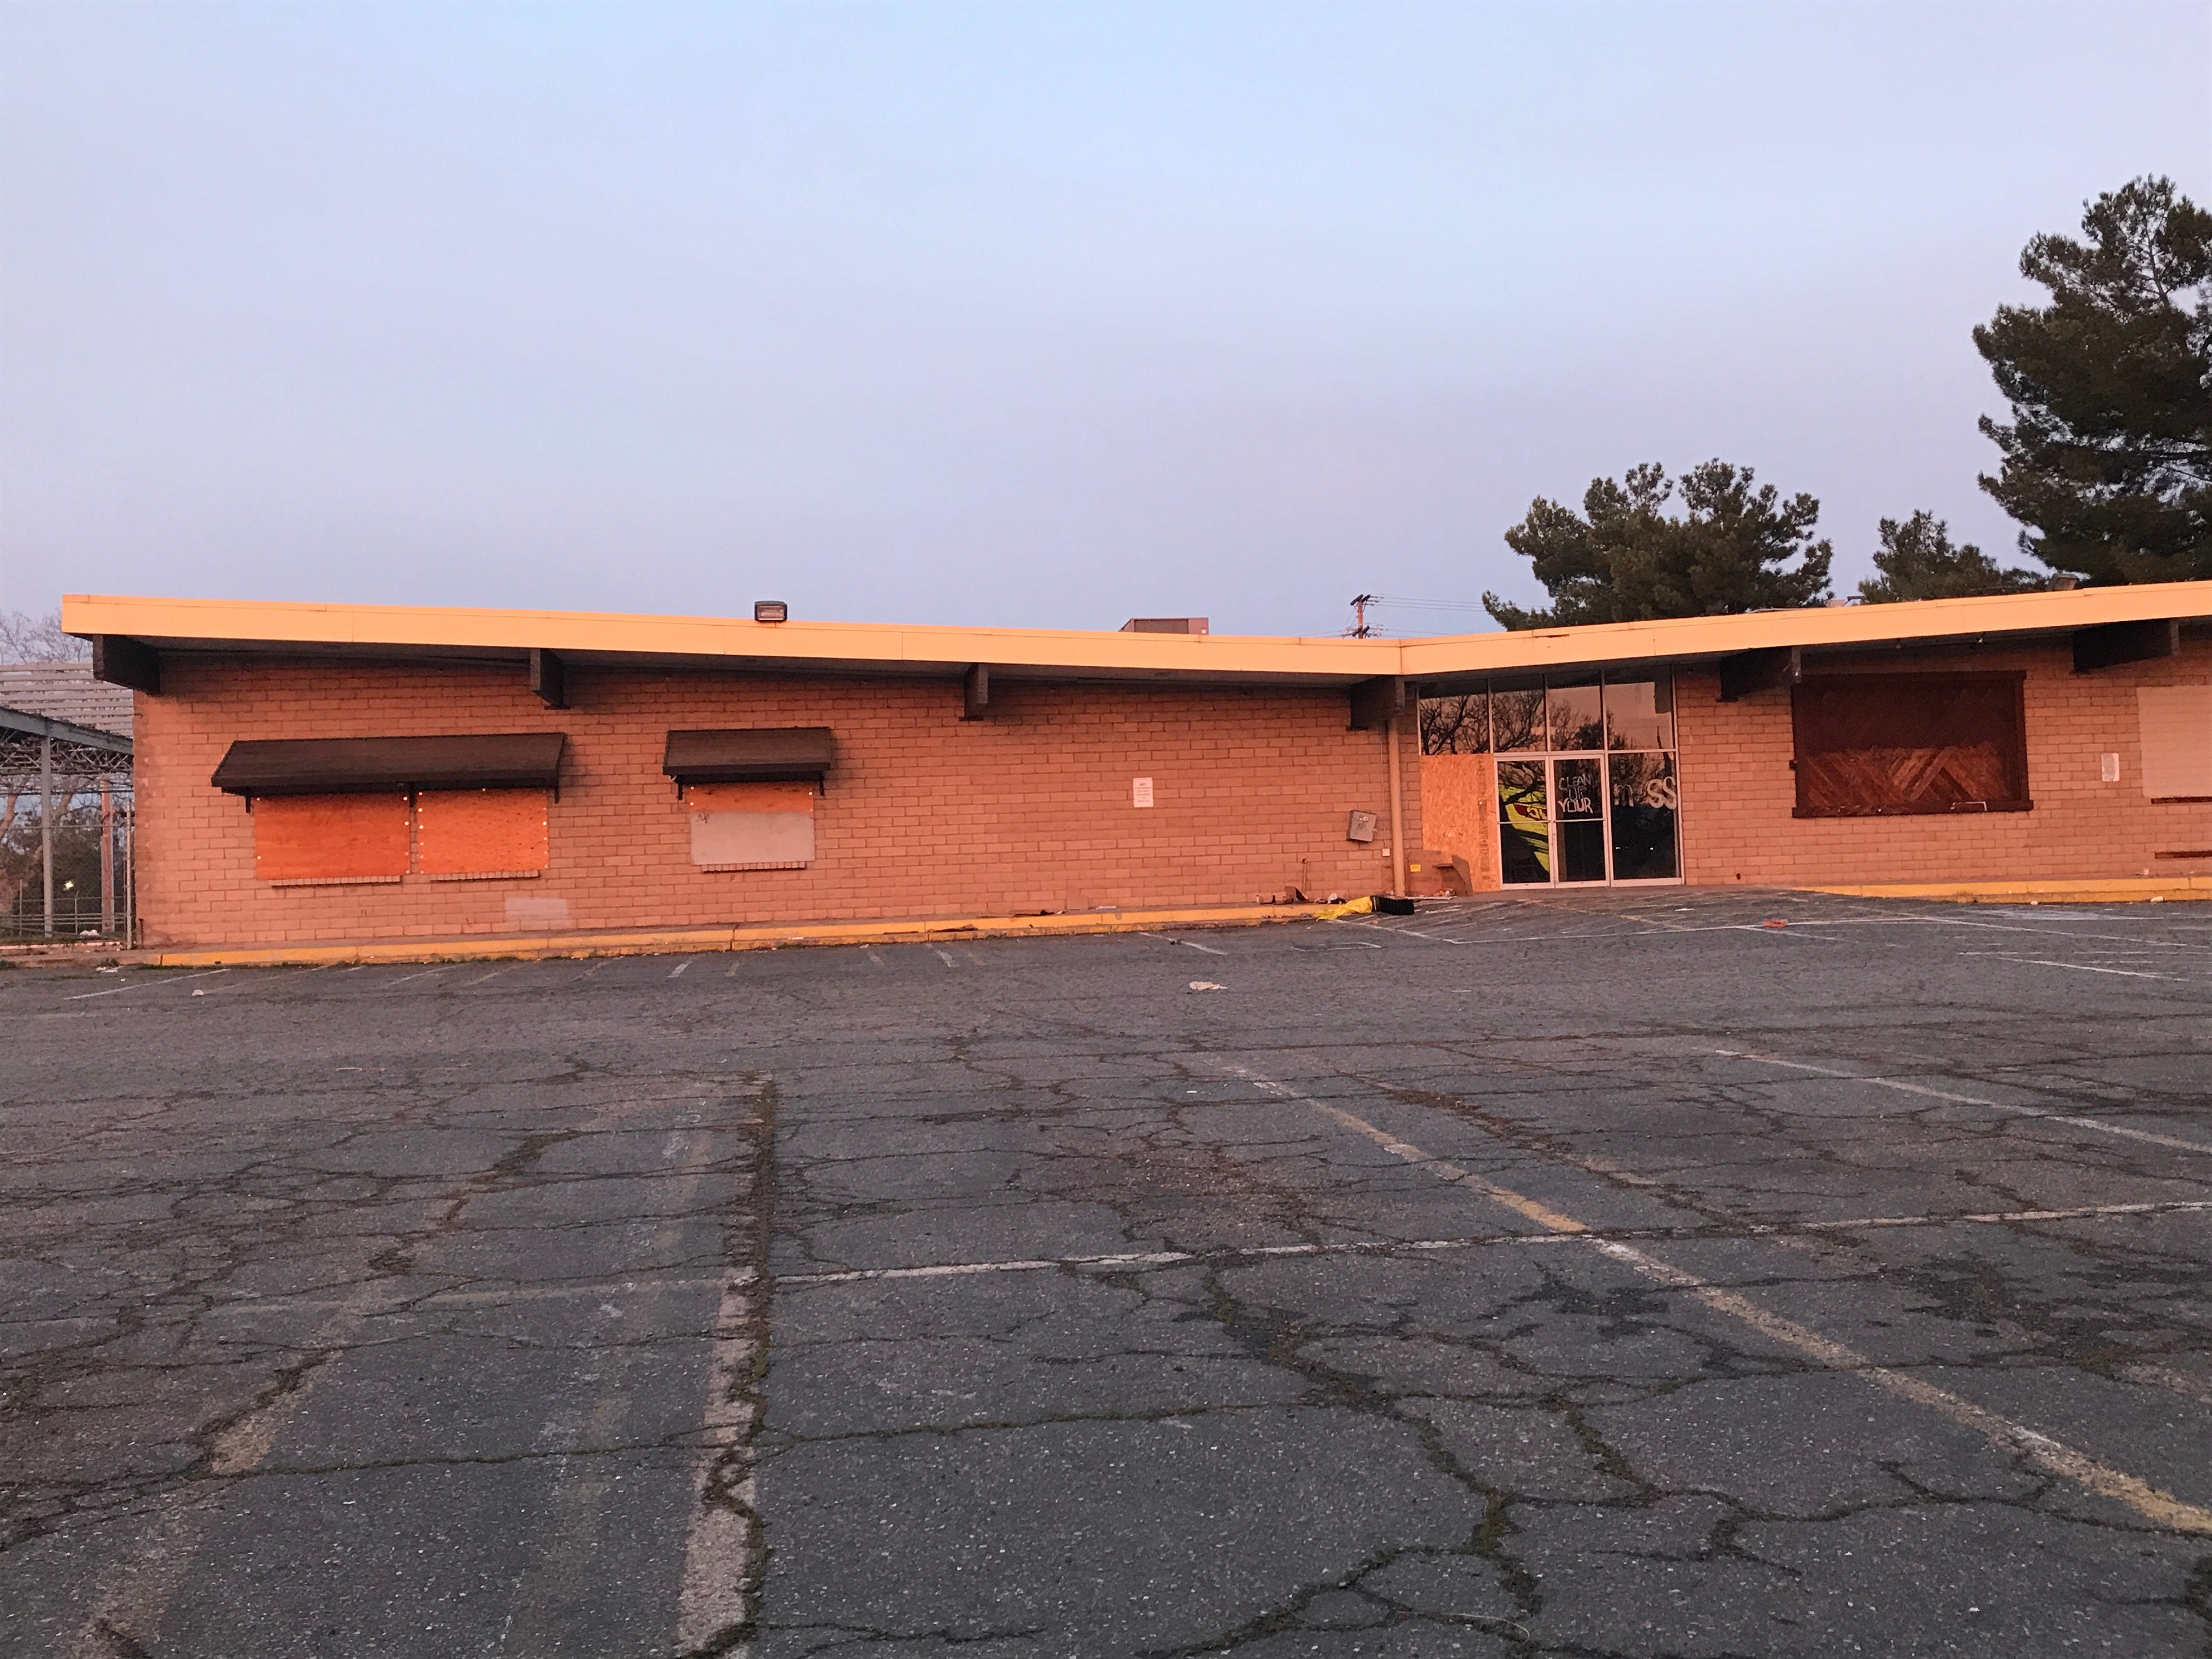 The BI-More store on East Cypress Avenue has sat empty since 2010.